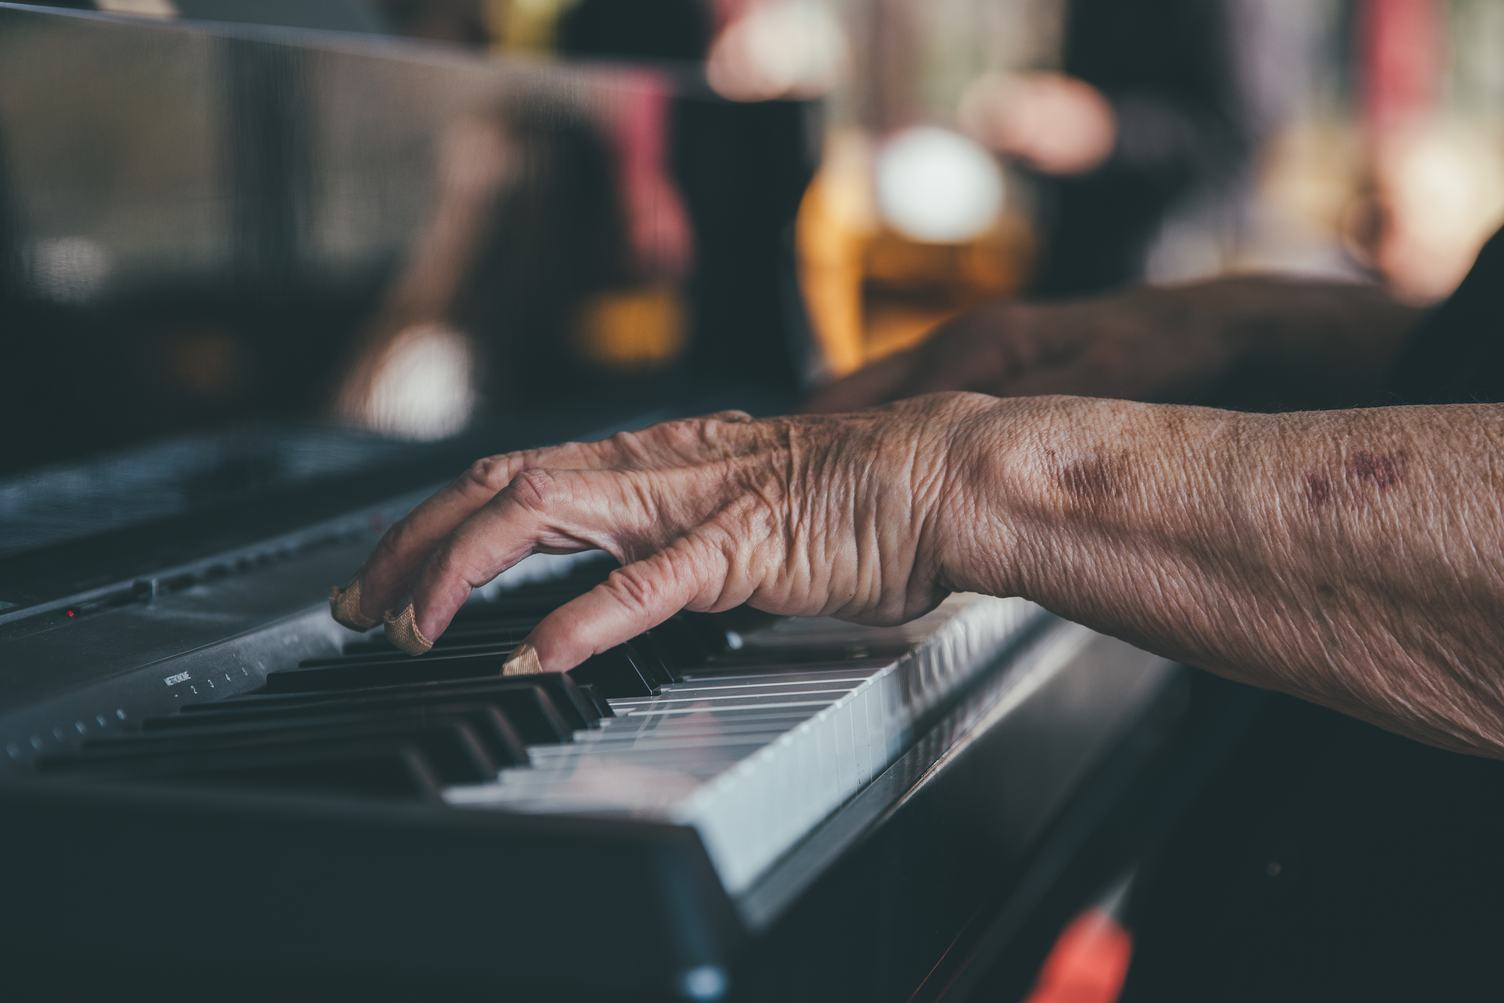 Hands of an Old Man Playing the Piano